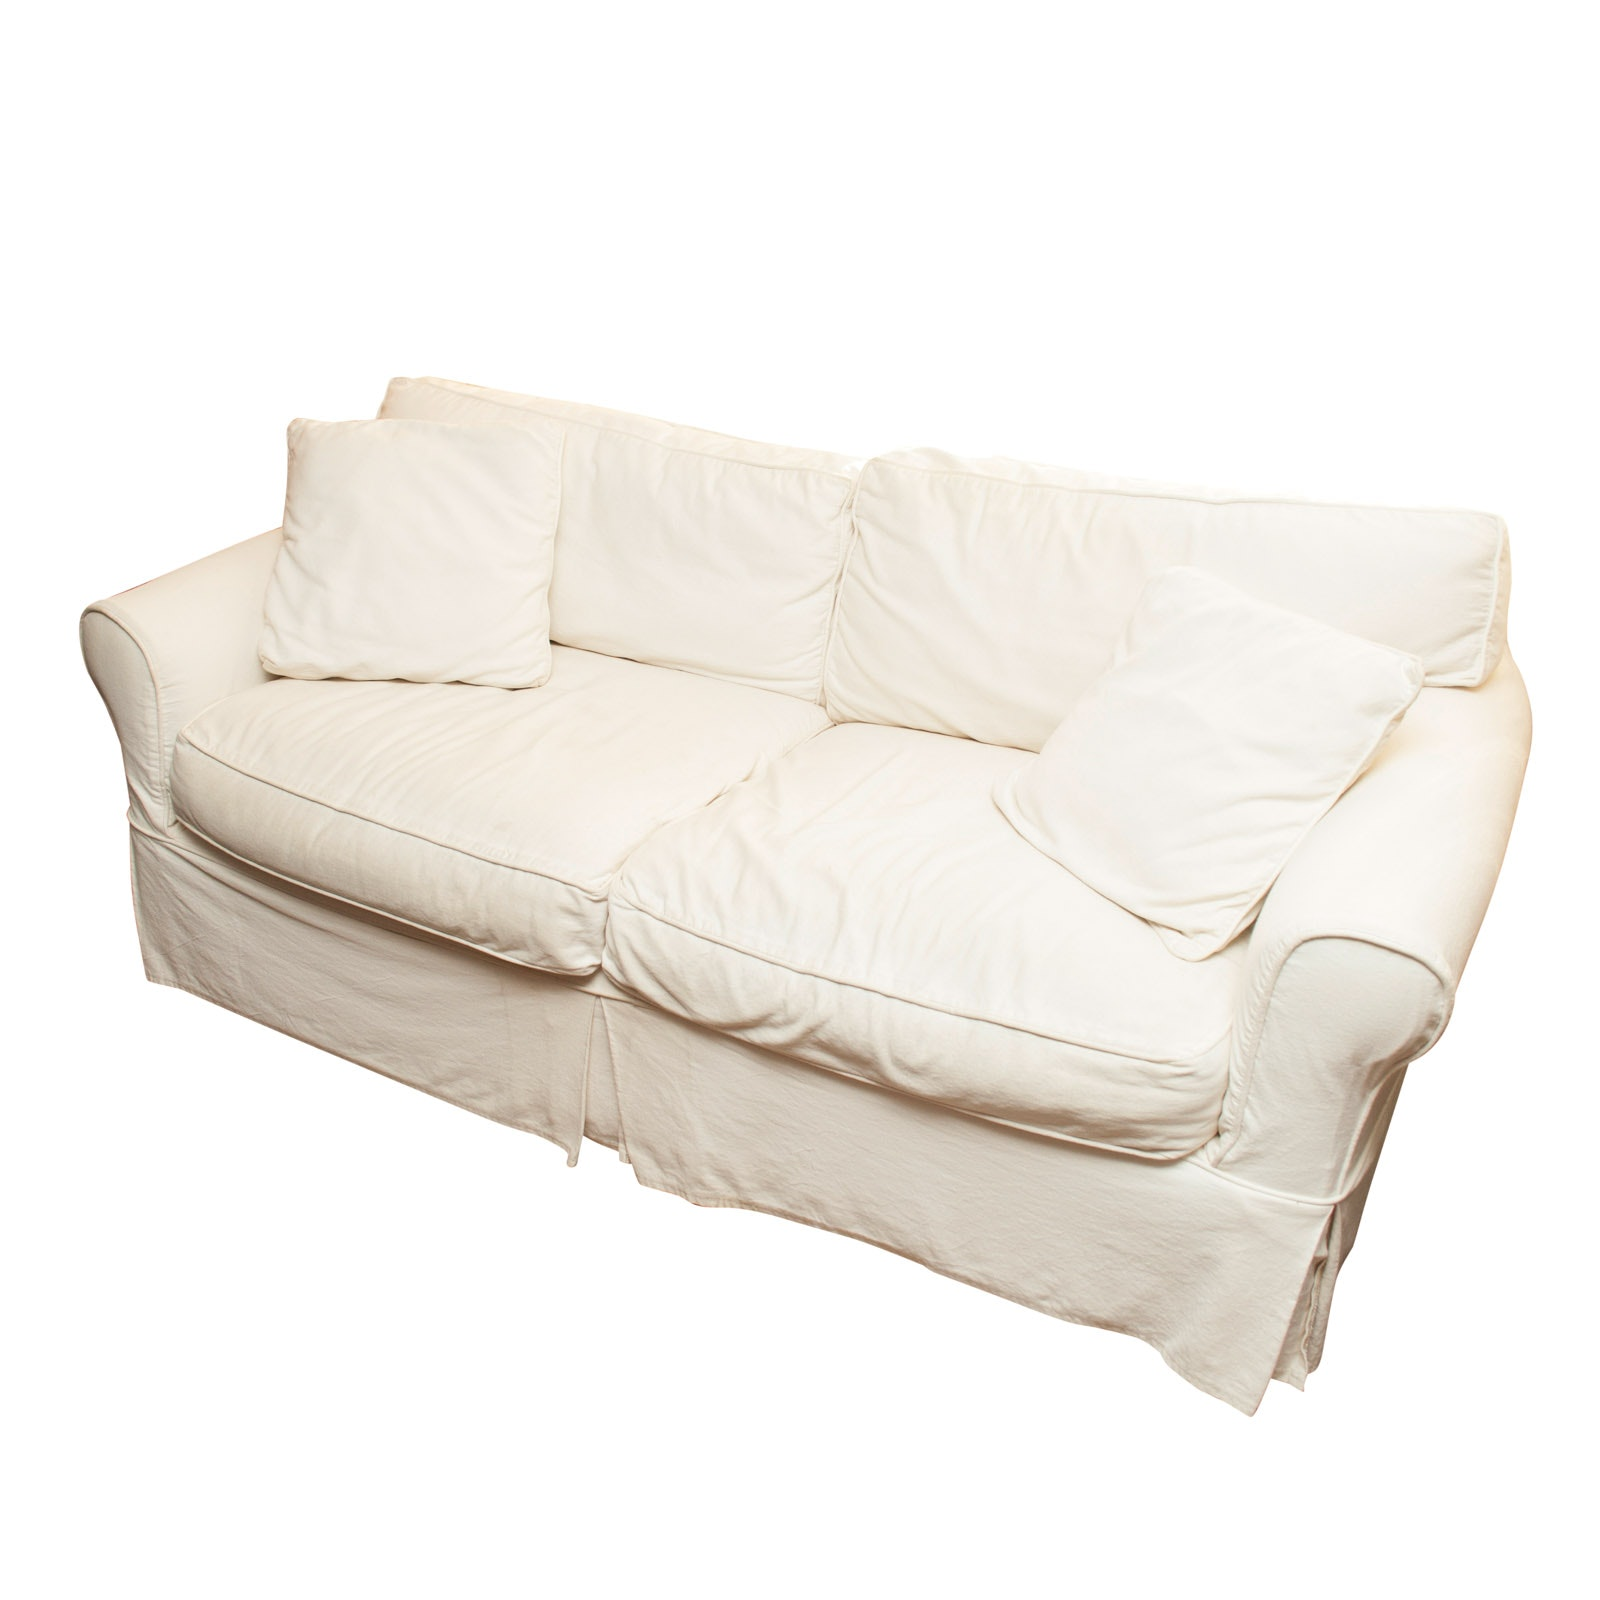 Camden Collection Sofa, 20th Century